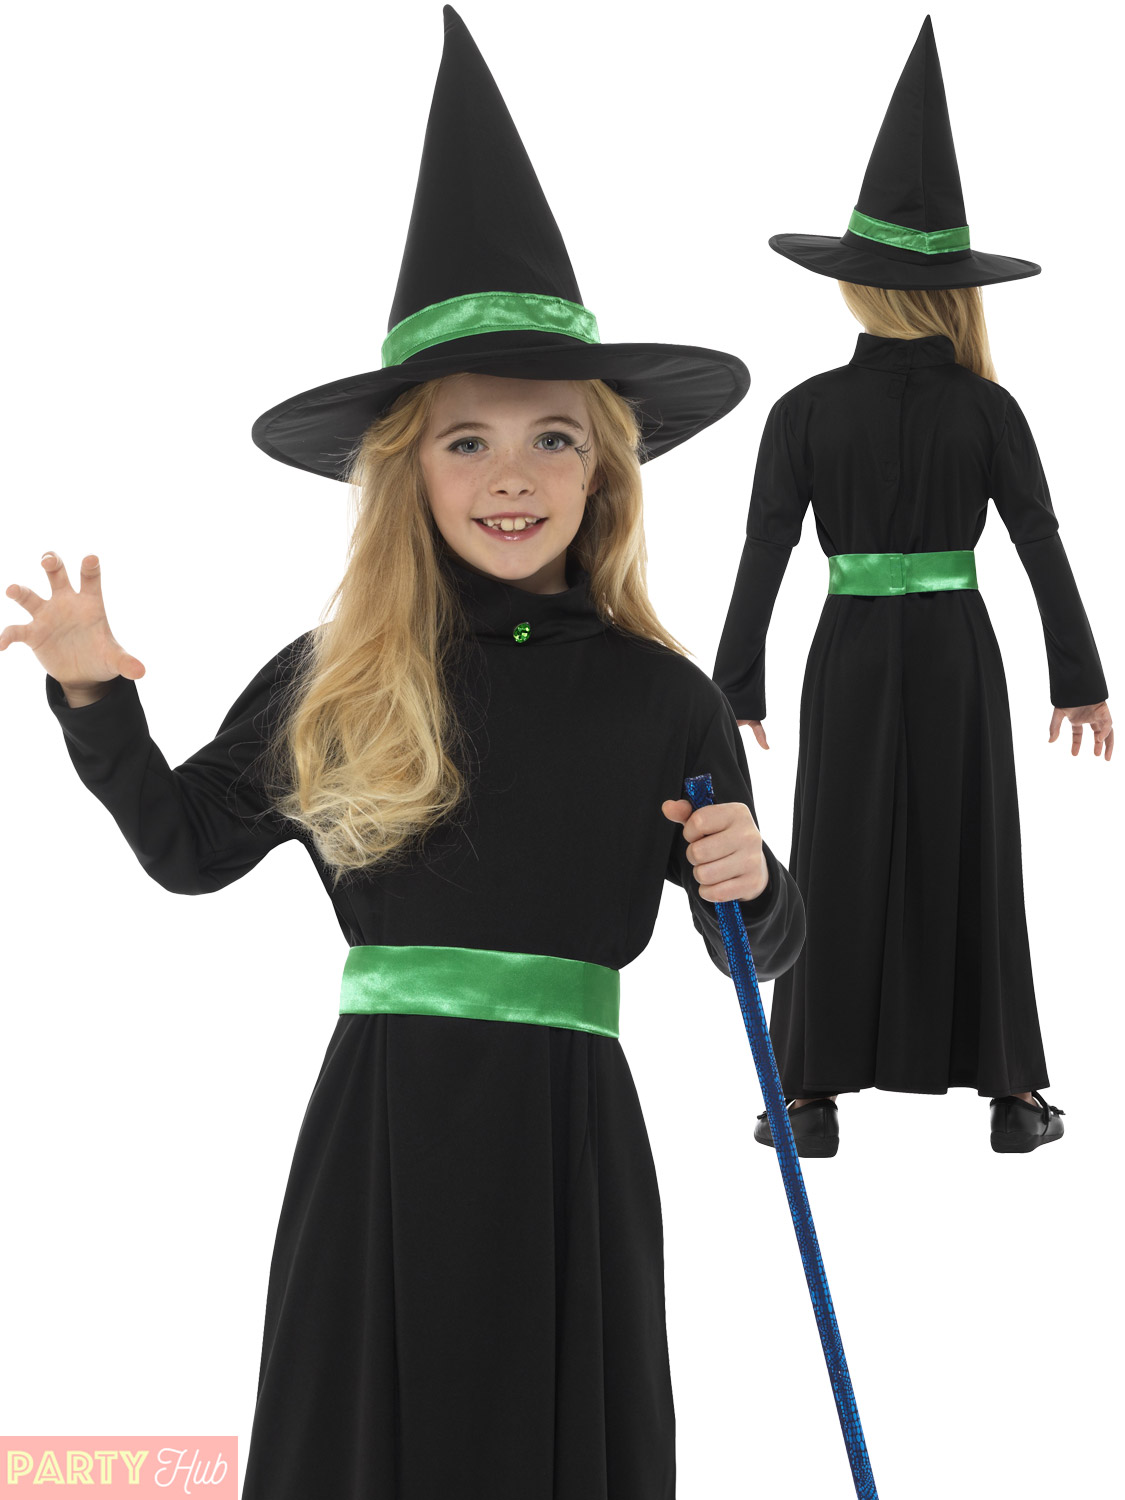 e77189fe262 Details about Girls Wicked Witch Costume Childs Classic Scary Halloween  Fancy Dress Outfit